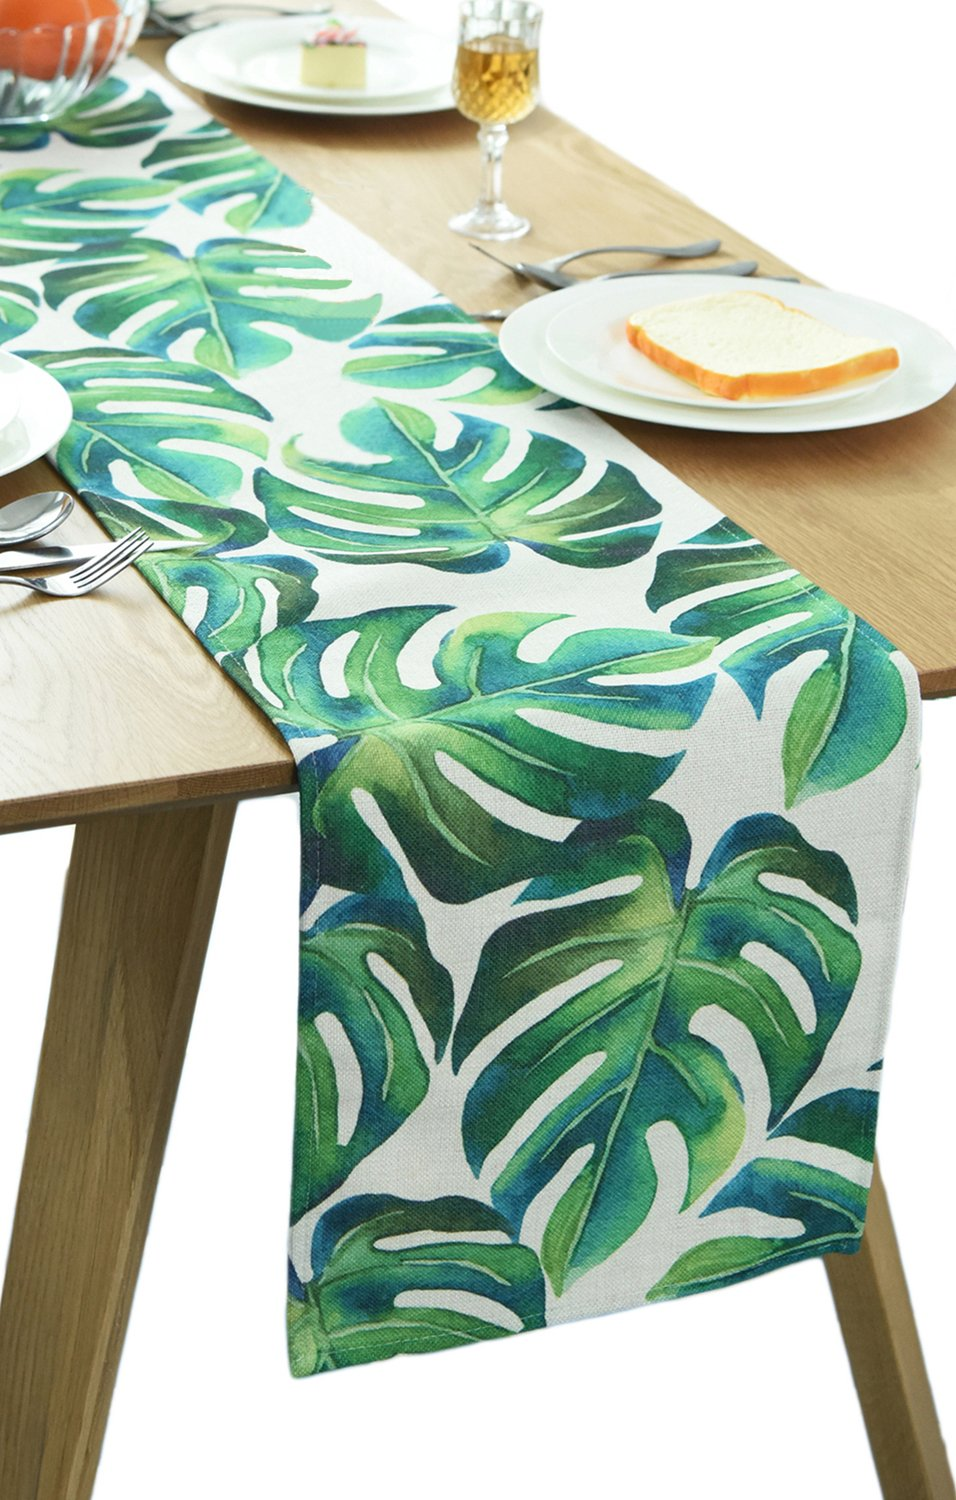 BOXAN 12x108 inch Burlap Table Runner with Palm Leaves, Hawaiian Luau Party Jungle Beach Theme Decorations for Table Decoration Accessories